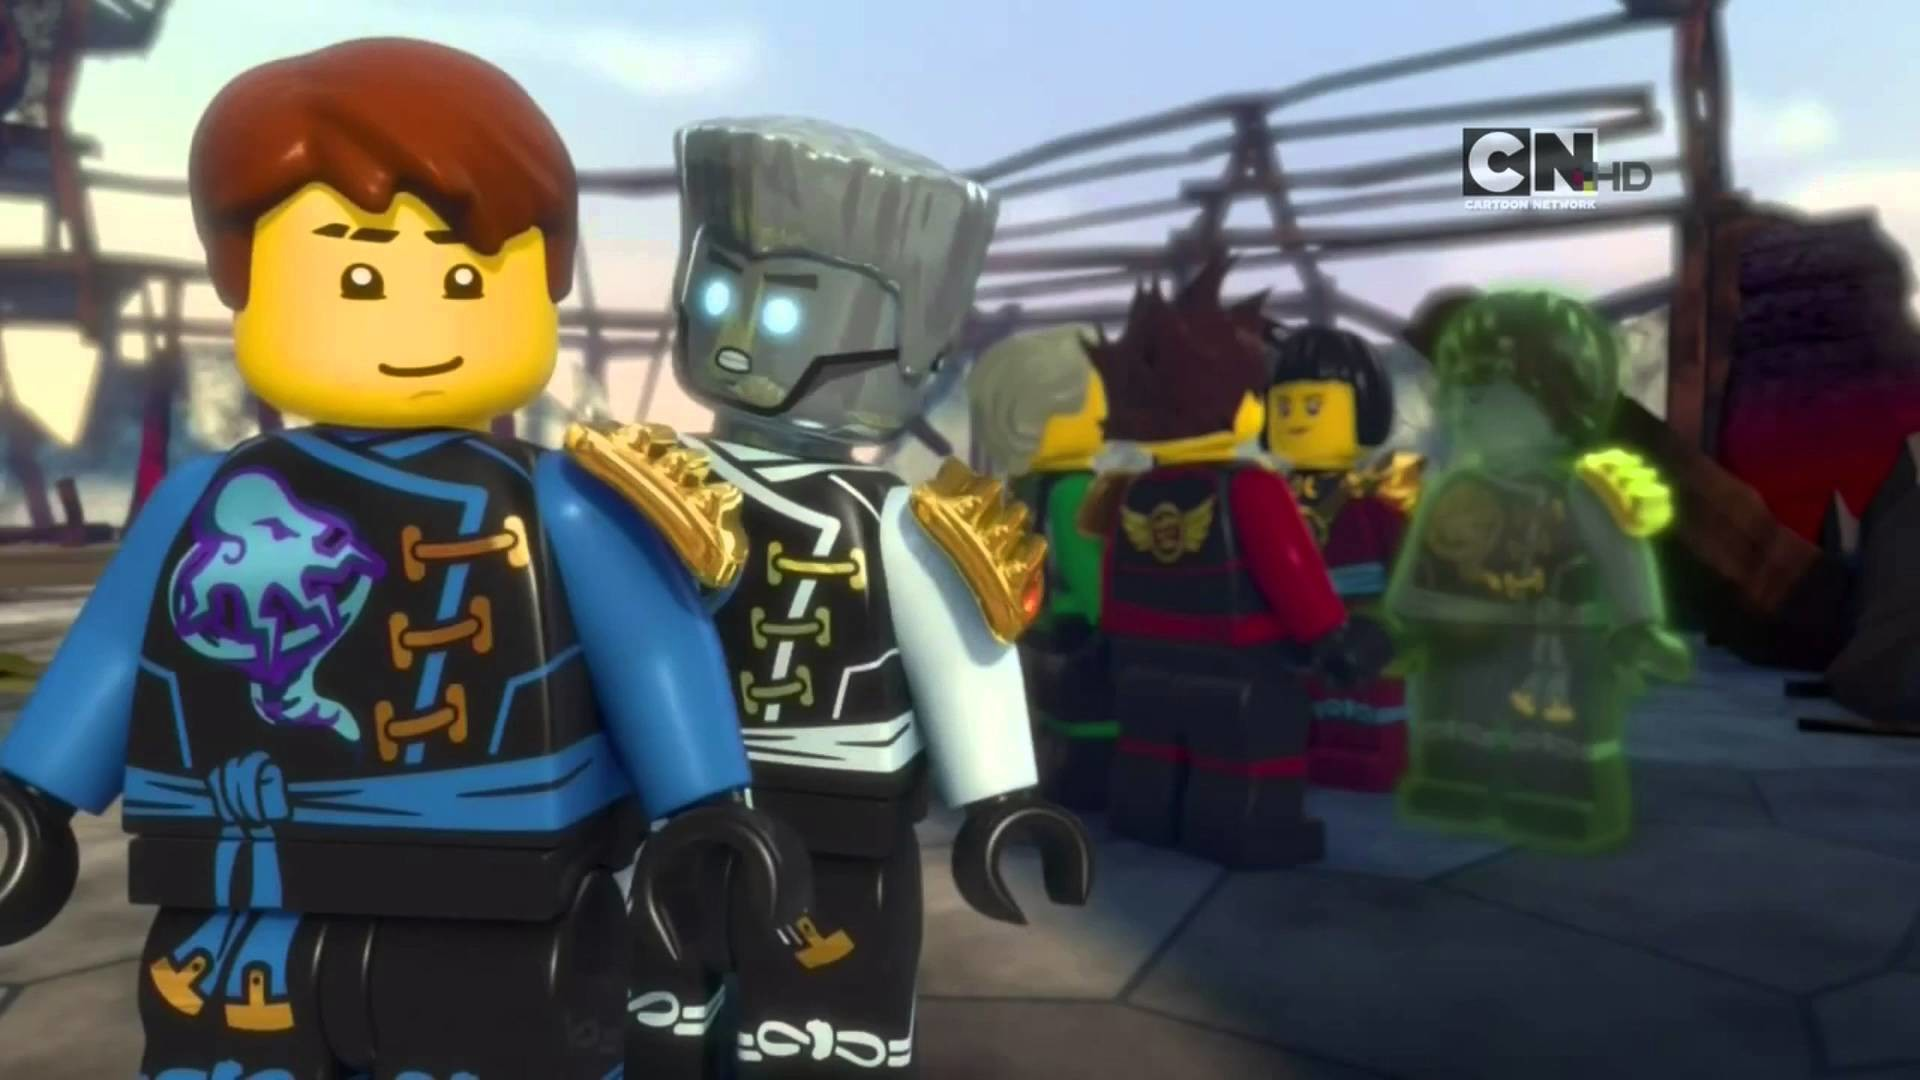 1920x1080 Ninjago Episode 56 Clip - Back To The Monastery (By  CrazyWarriorsOfTheLight) - YouTube